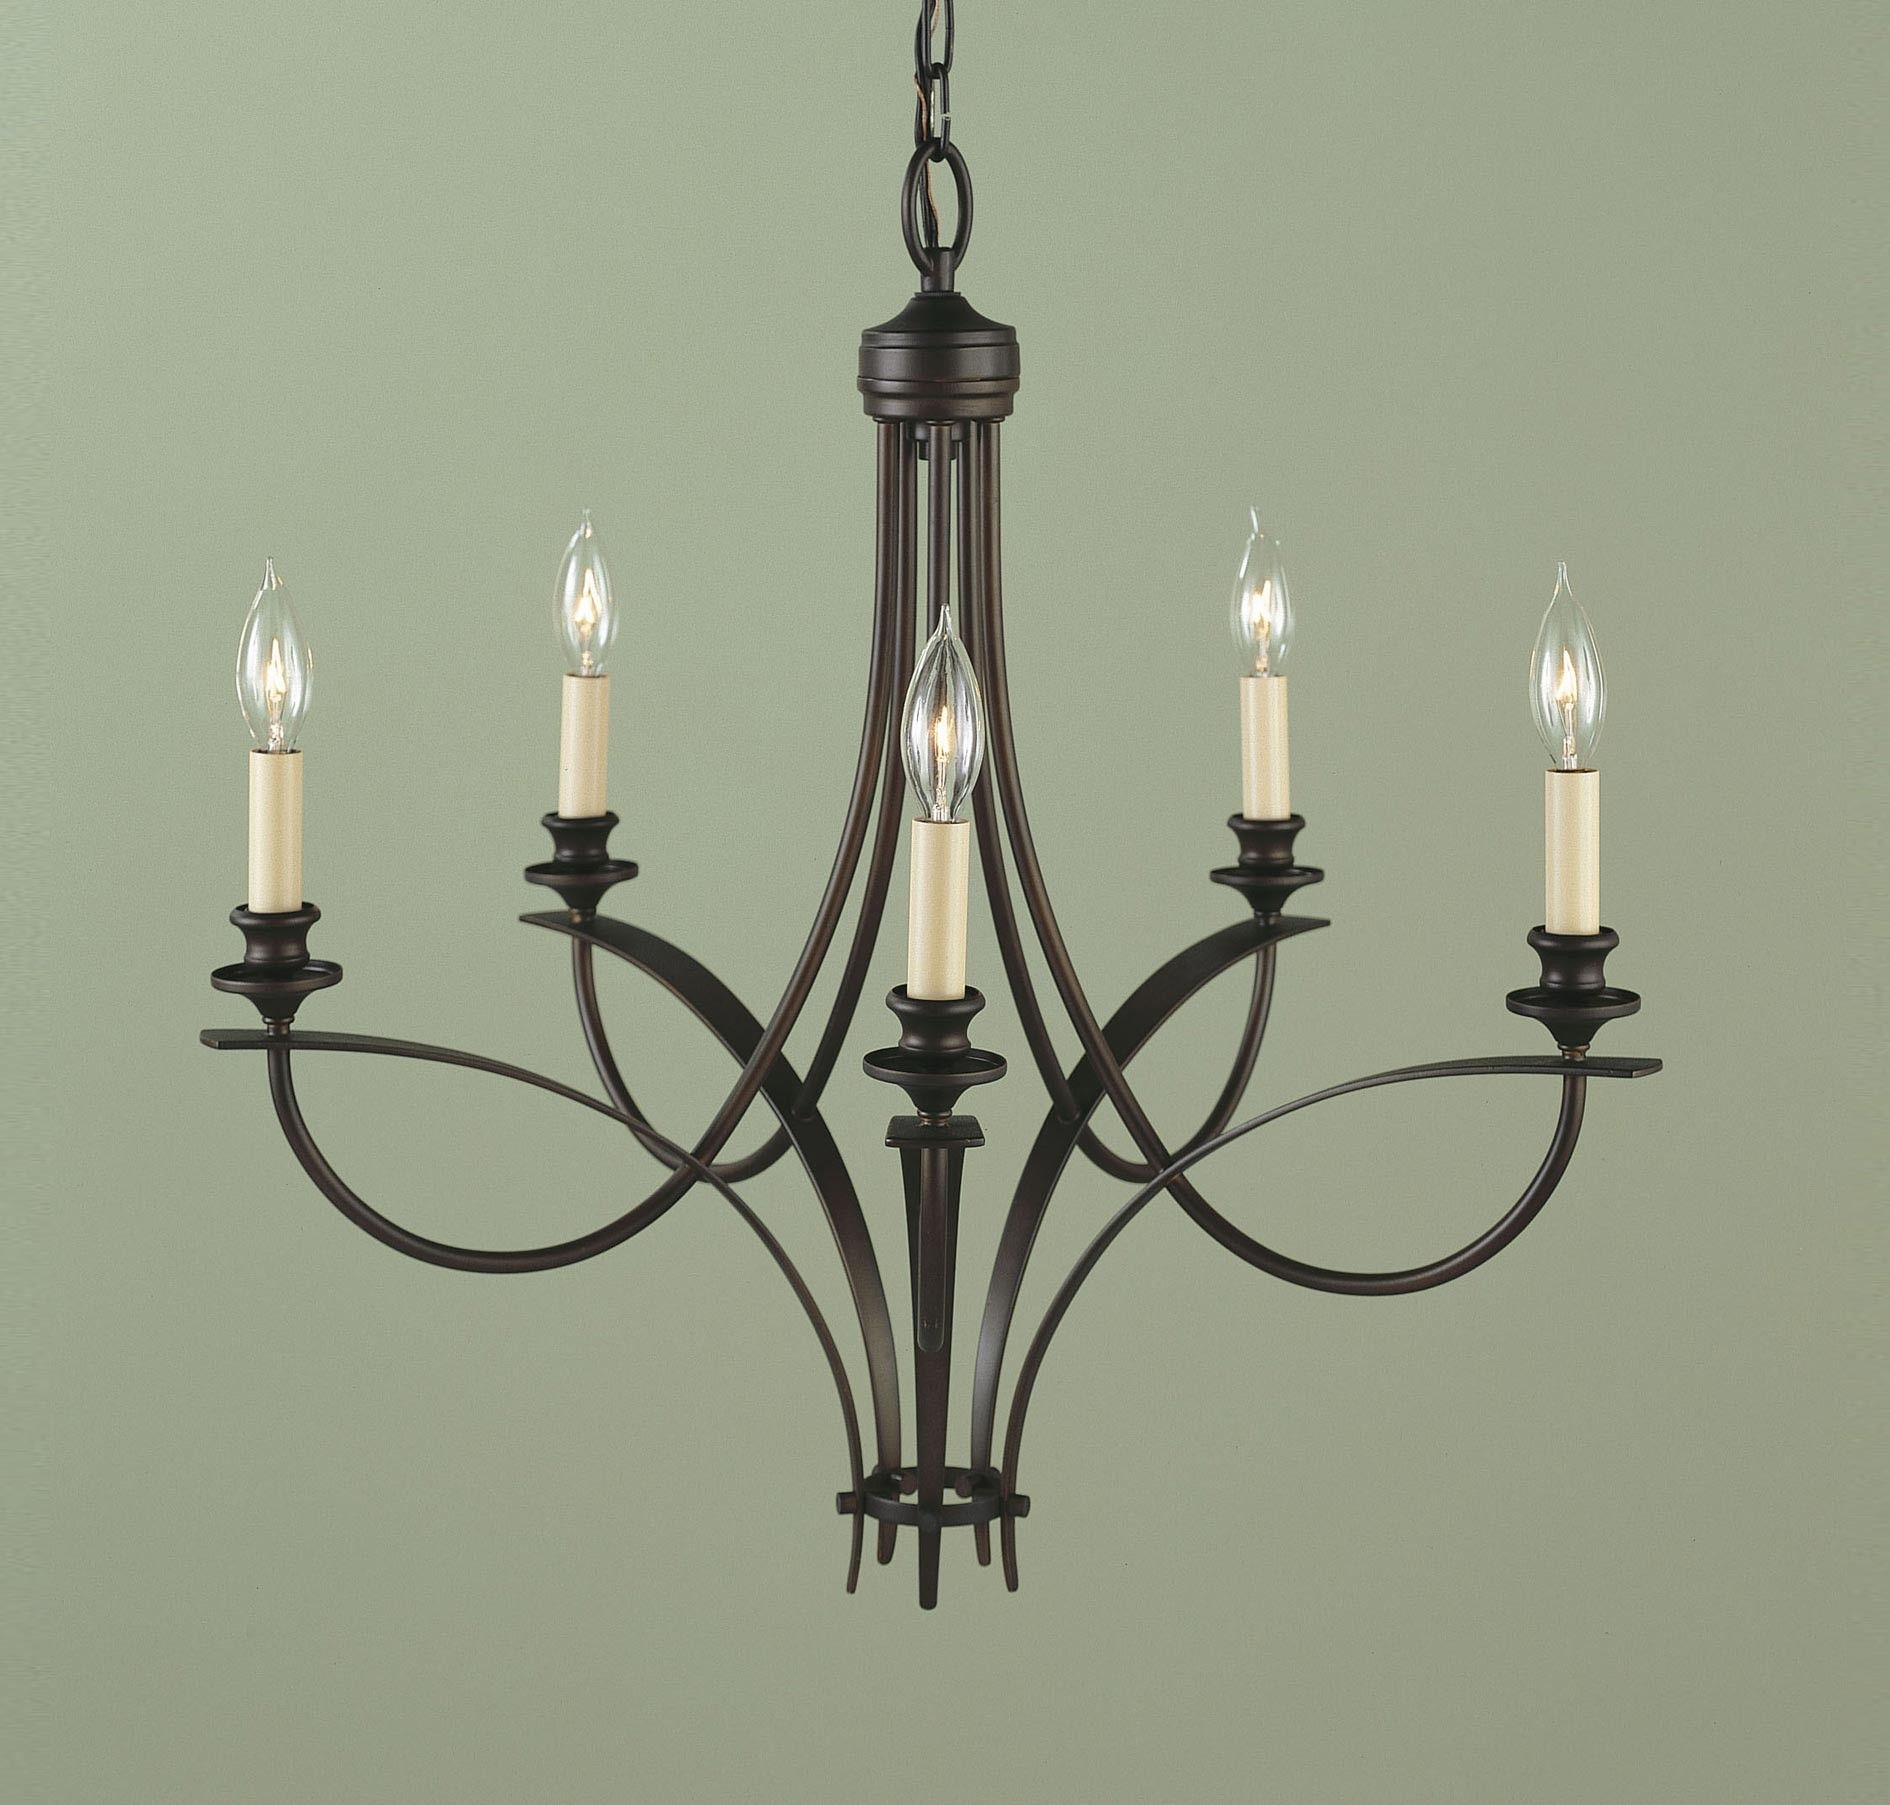 Feiss Boulevard Collection Chandelier in Brands Murray Feiss